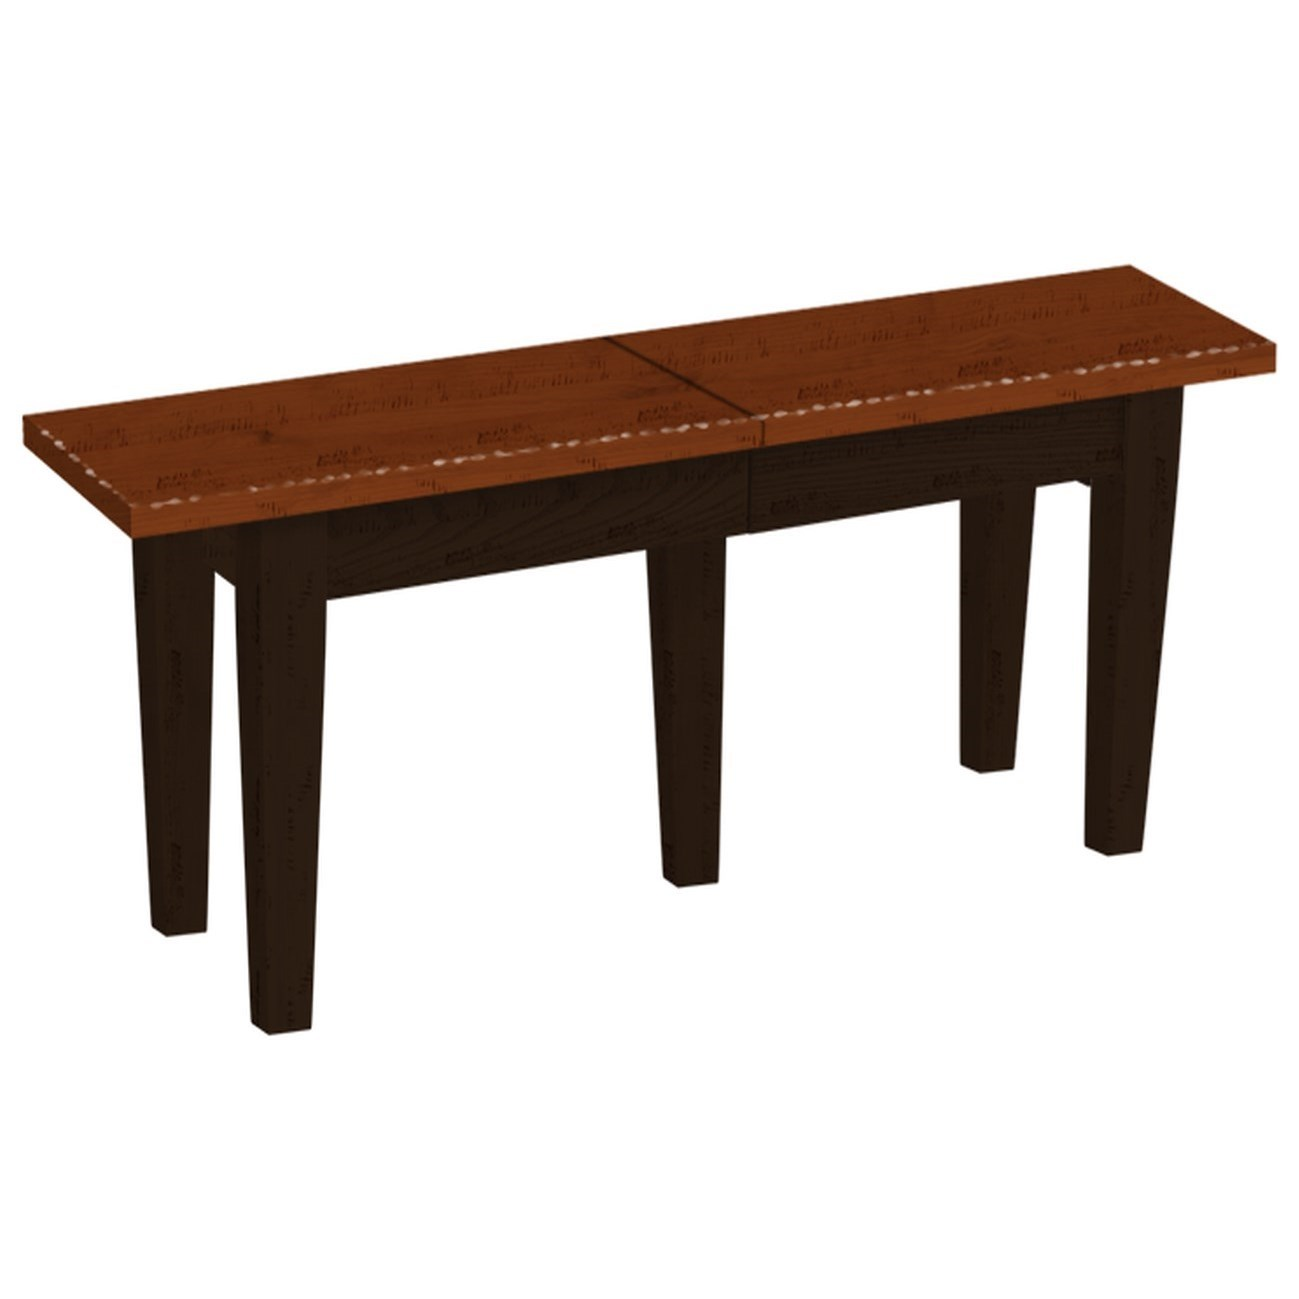 Daniel S Amish Chairs And Barstools 48124t Customizable